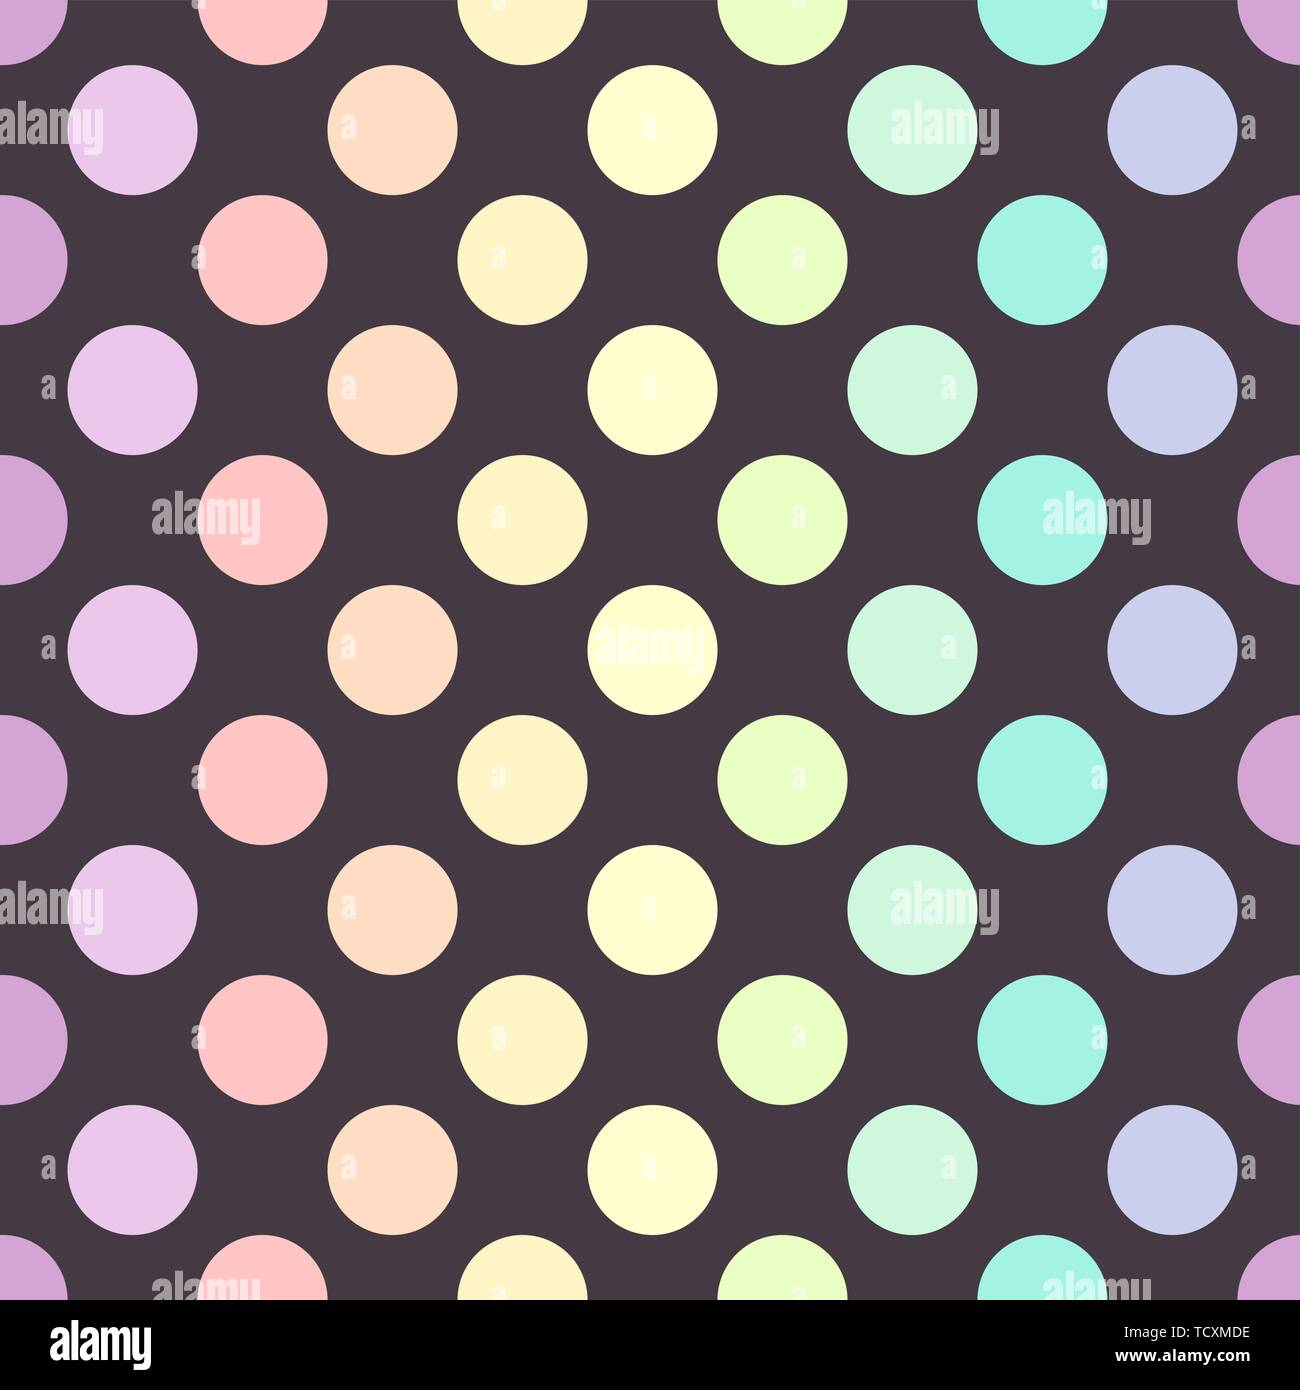 Pastel colors polka dots on dark background. Vector illustration - Stock Image